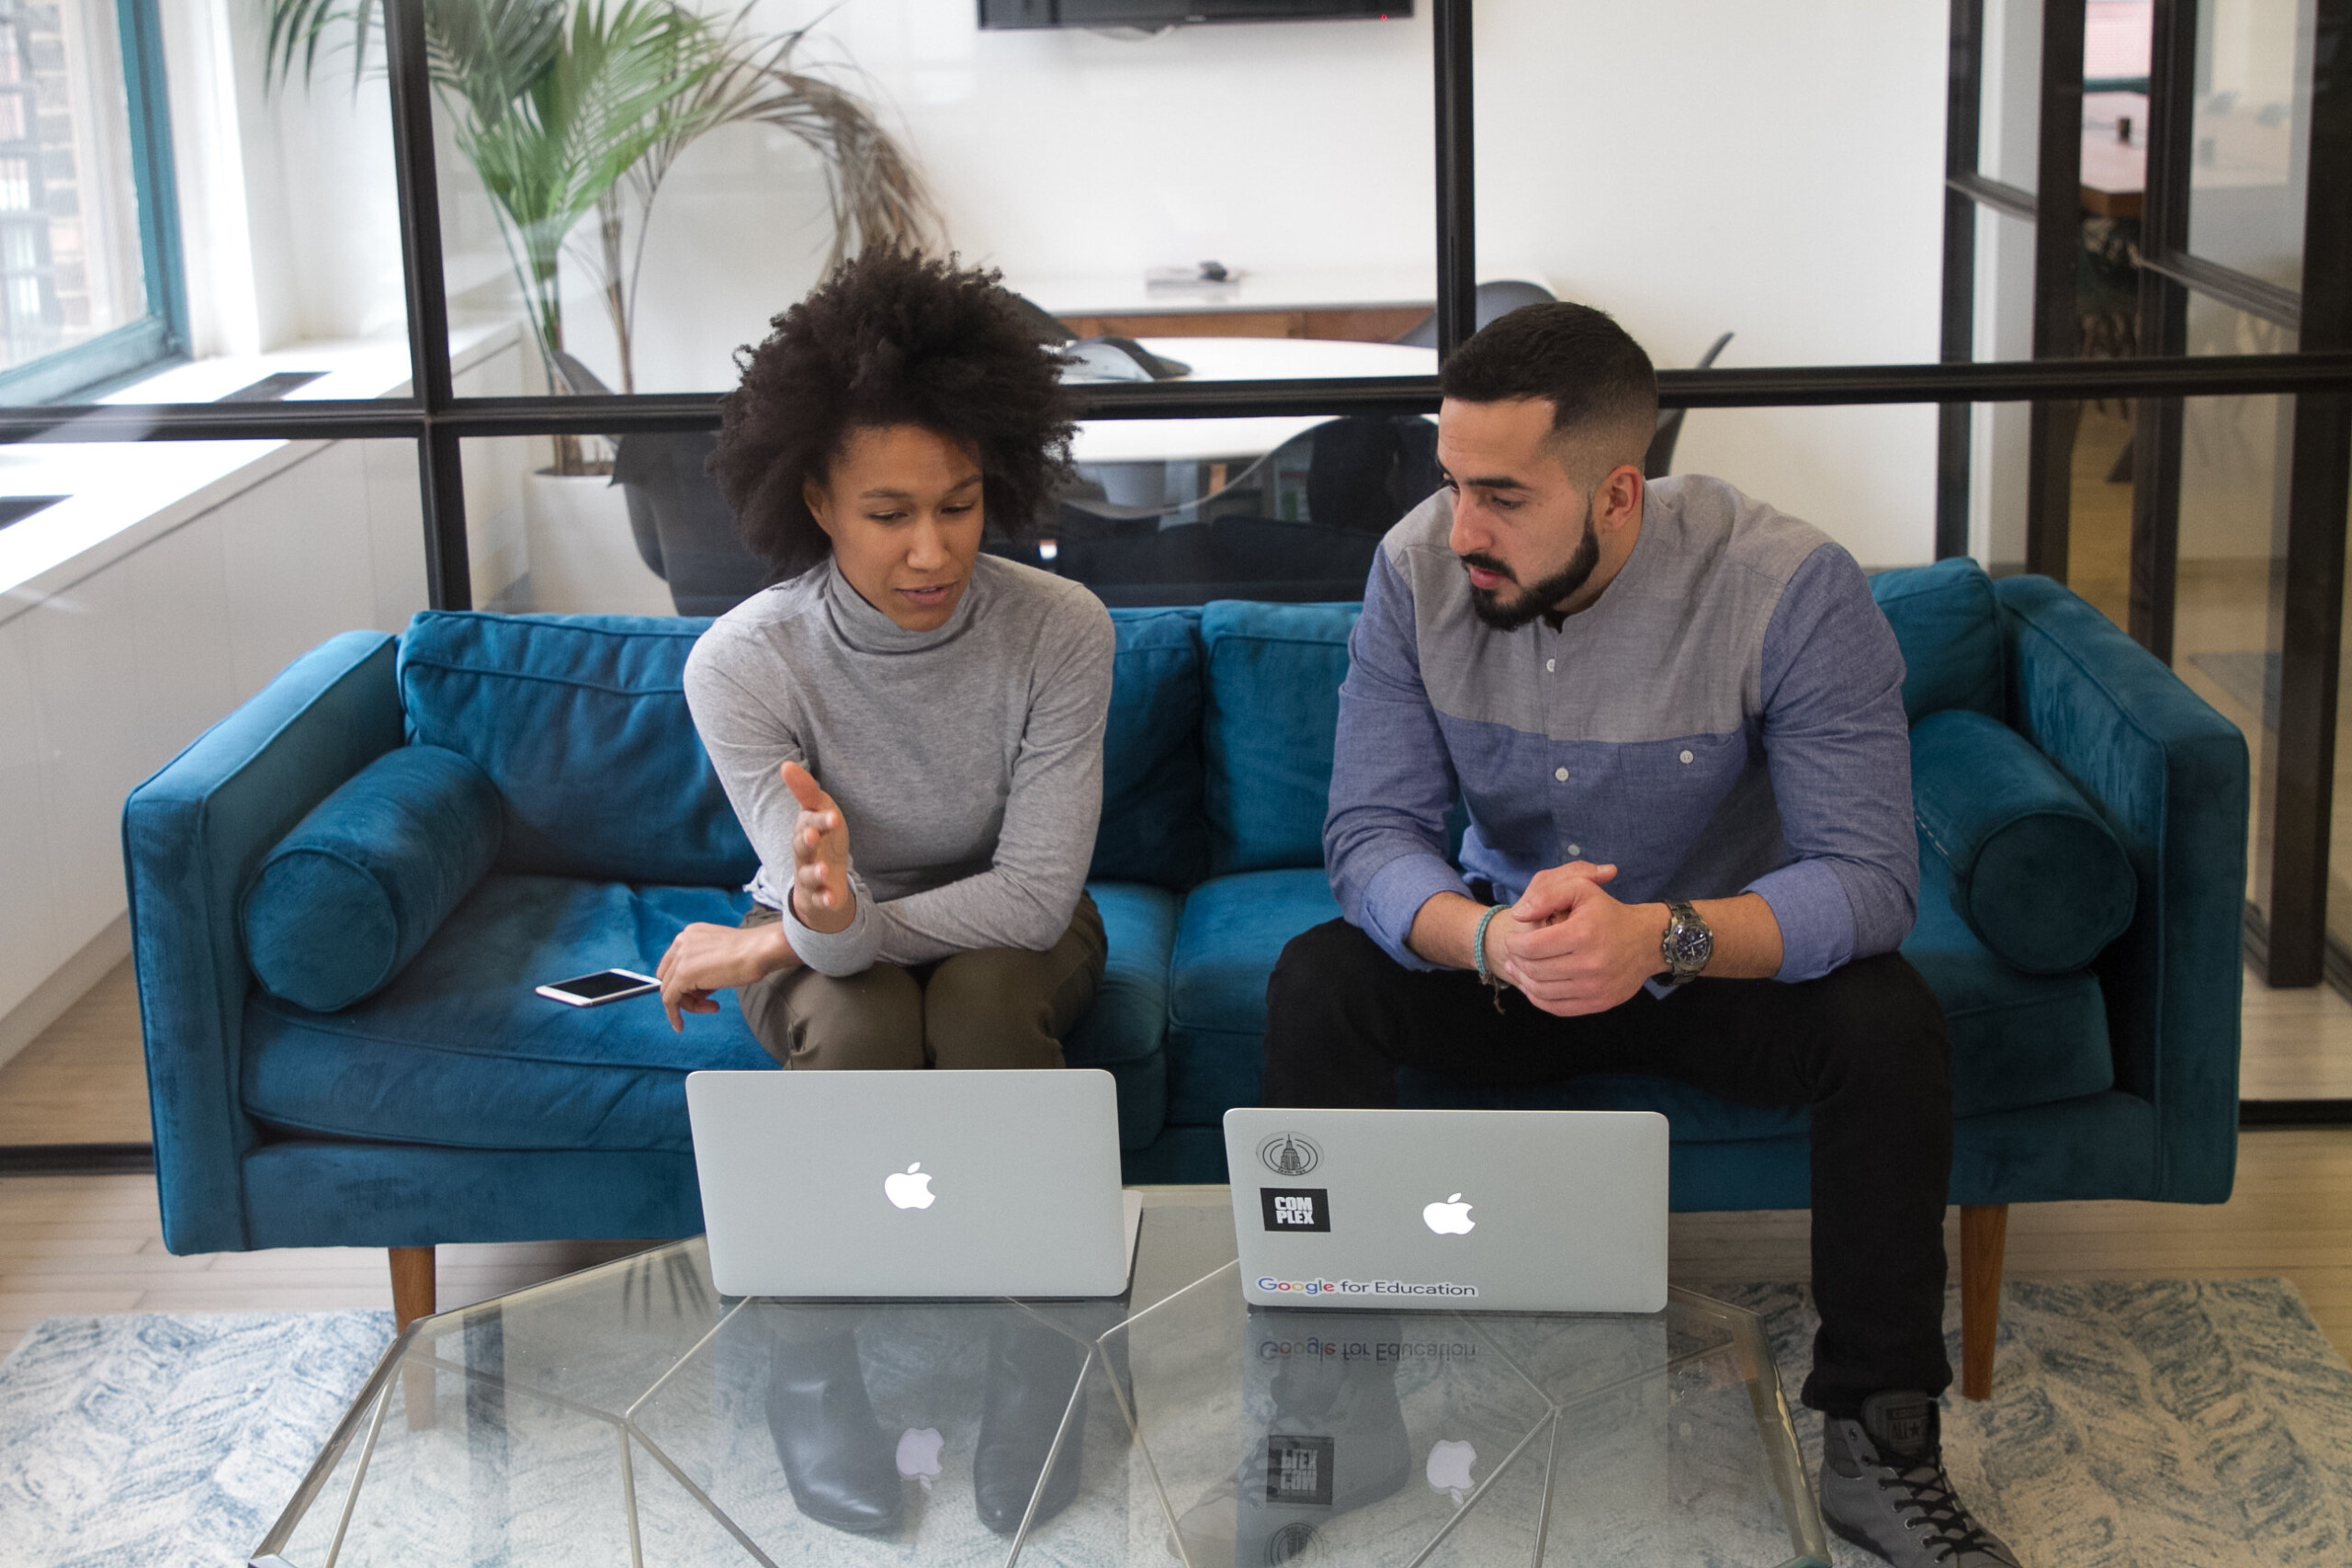 Woman and man sitting on couch looking at laptops